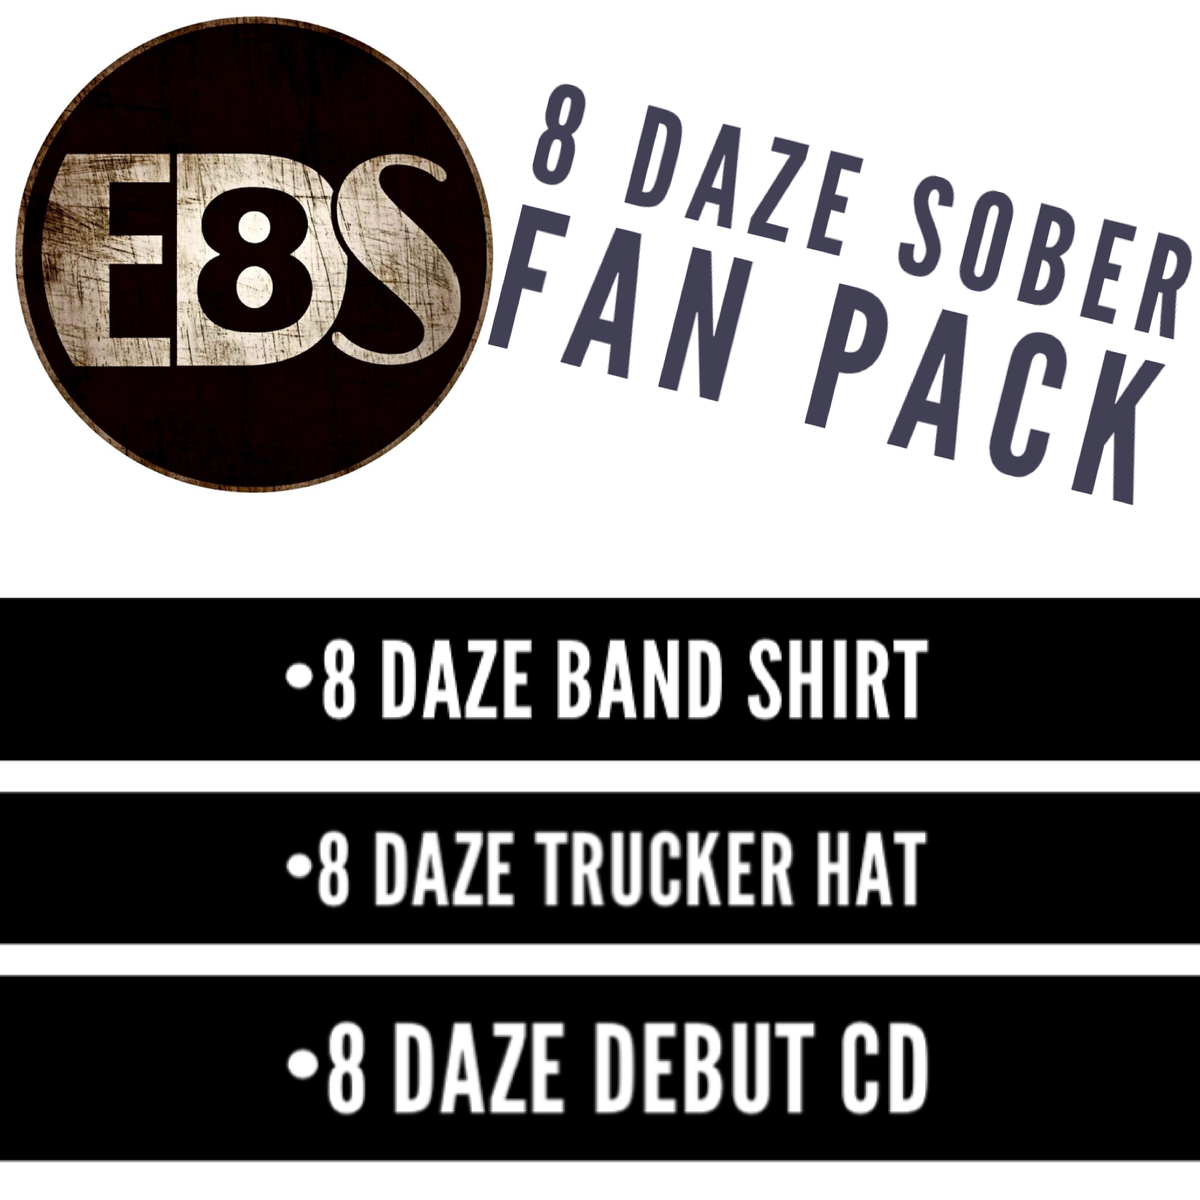 Image of 8 Daze Sober Fan Pack